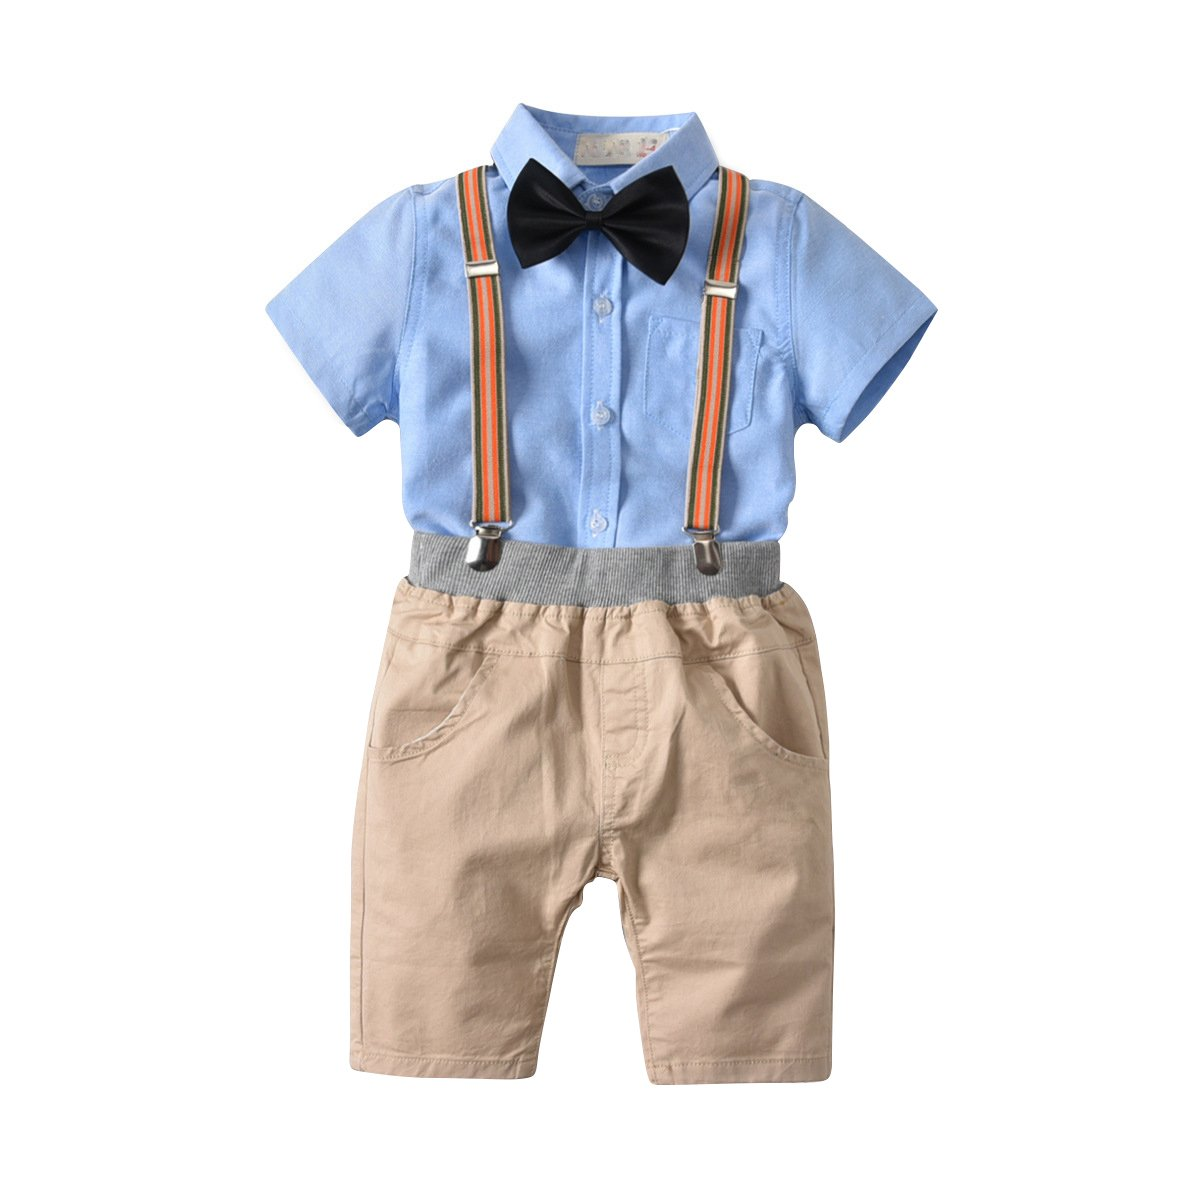 a148f9b41 Baby Boy Gentleman 4 Pcs Set: Blue Short Sleeve Shirt + Khaki Shorts + Bow  Tie + Suspender Visible soft and secure material: Cotton and linen blend  fabric, ...